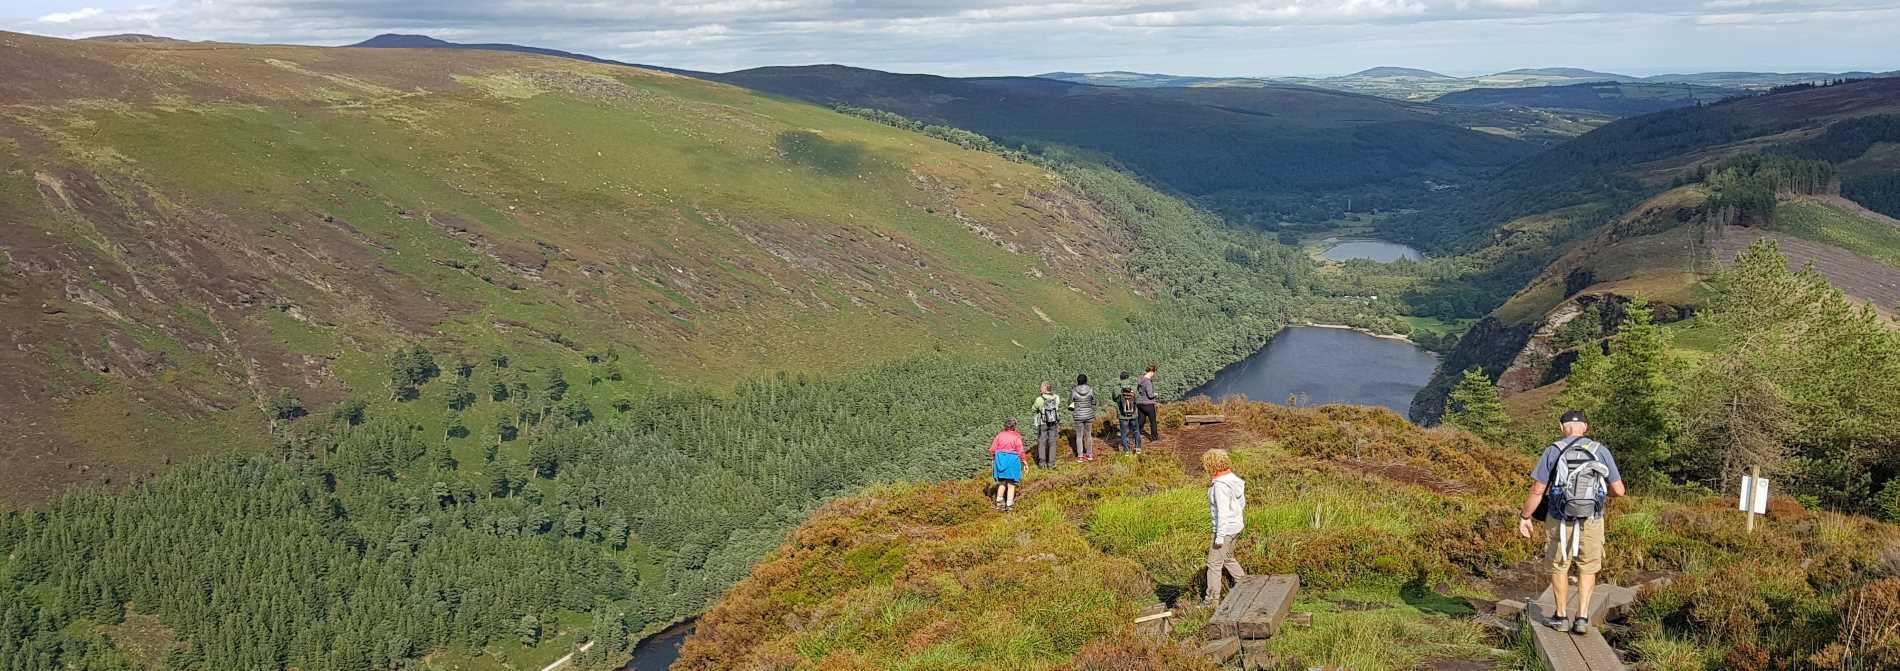 tours-and-guides-wicklow